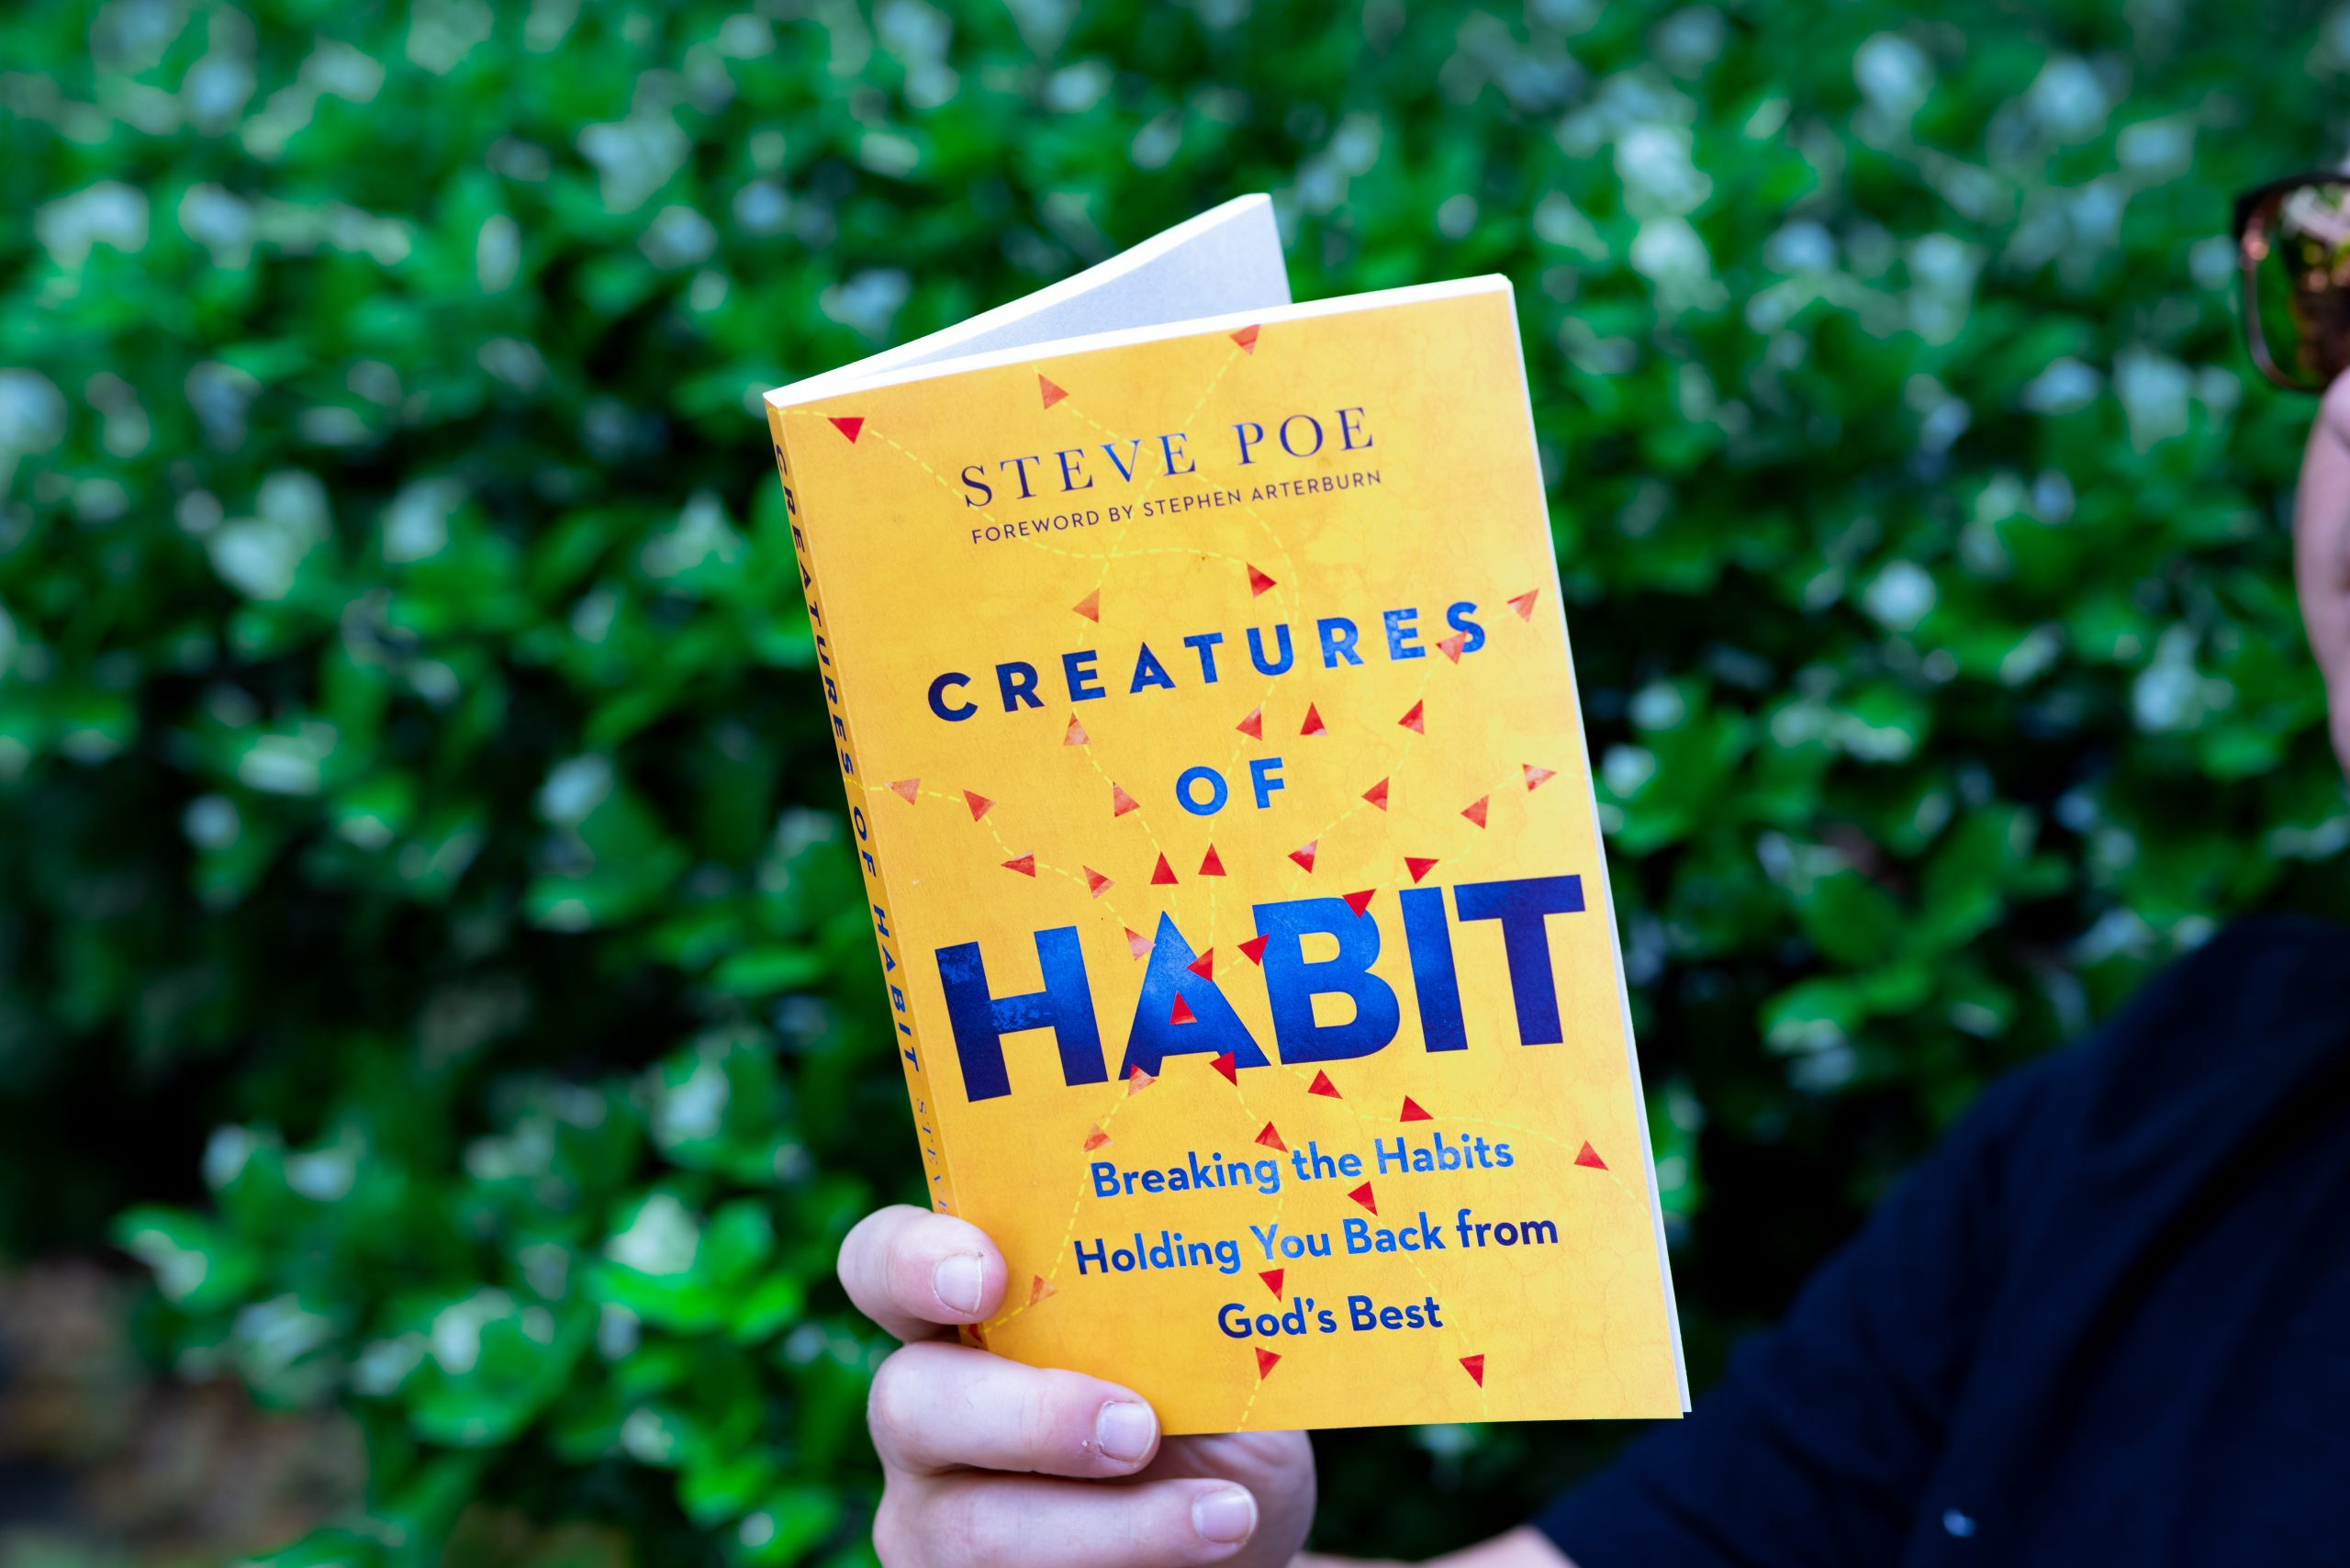 Creatures of Habit: Breaking the Habits Holding You Back from God's Best by Steve Poe